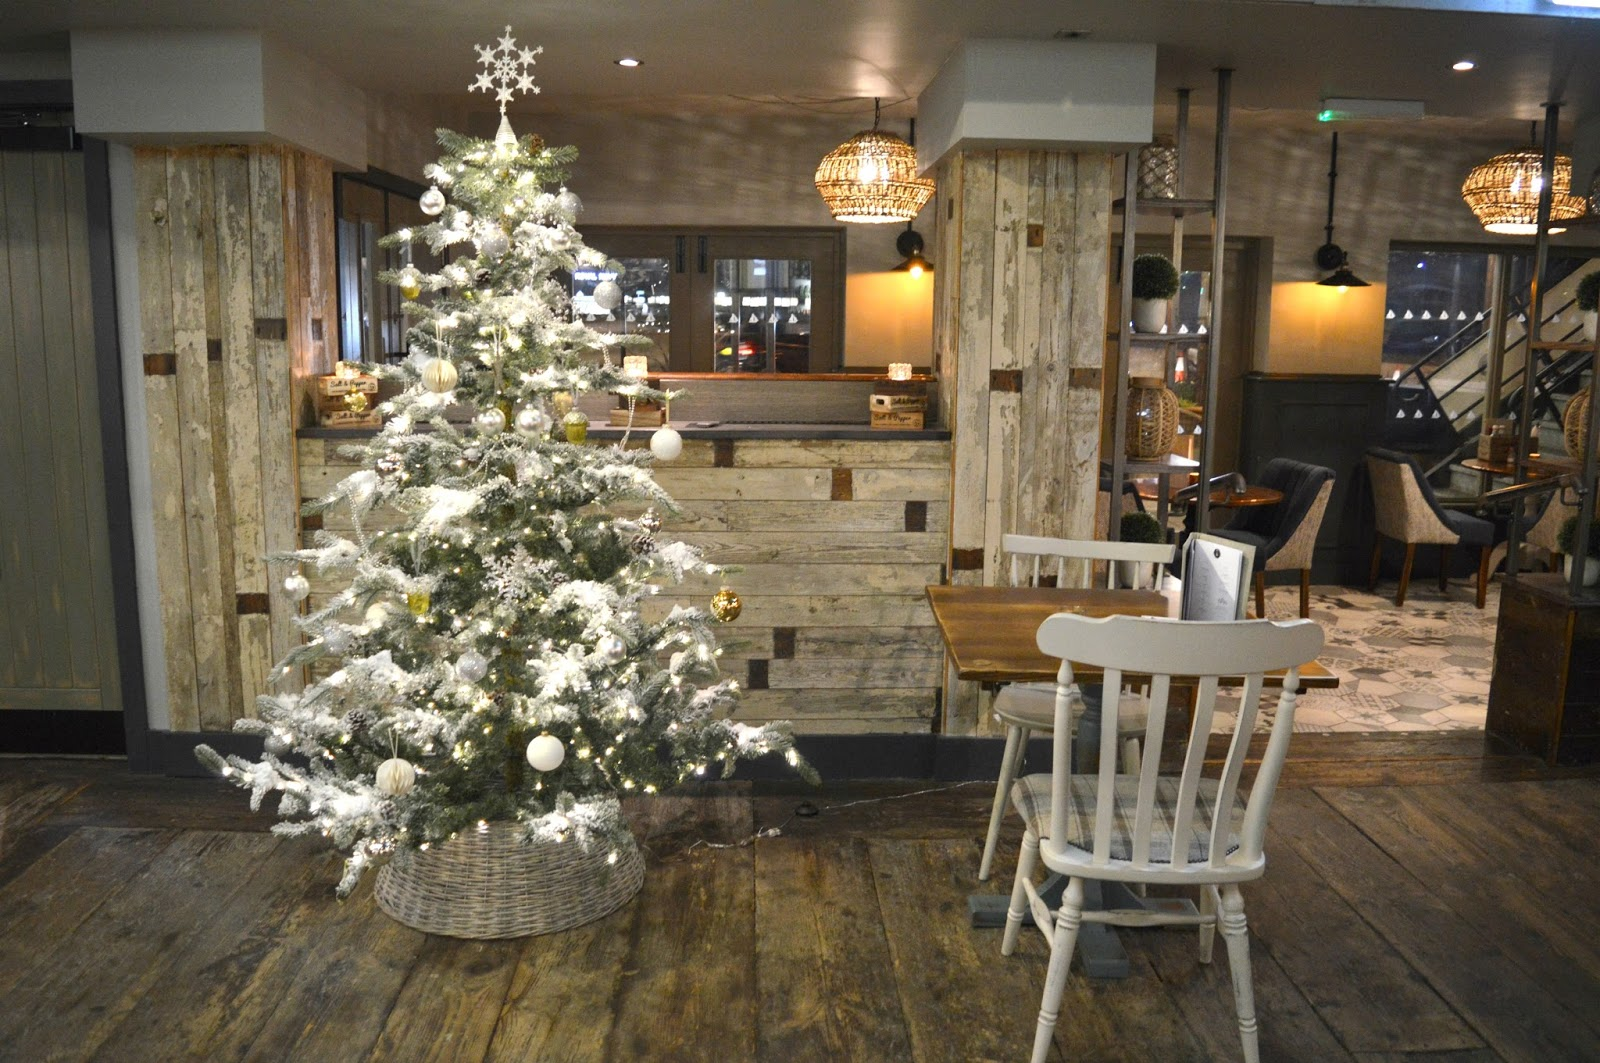 Christmas at the Jolly Fisherman on the Quayside - Christmas Tree